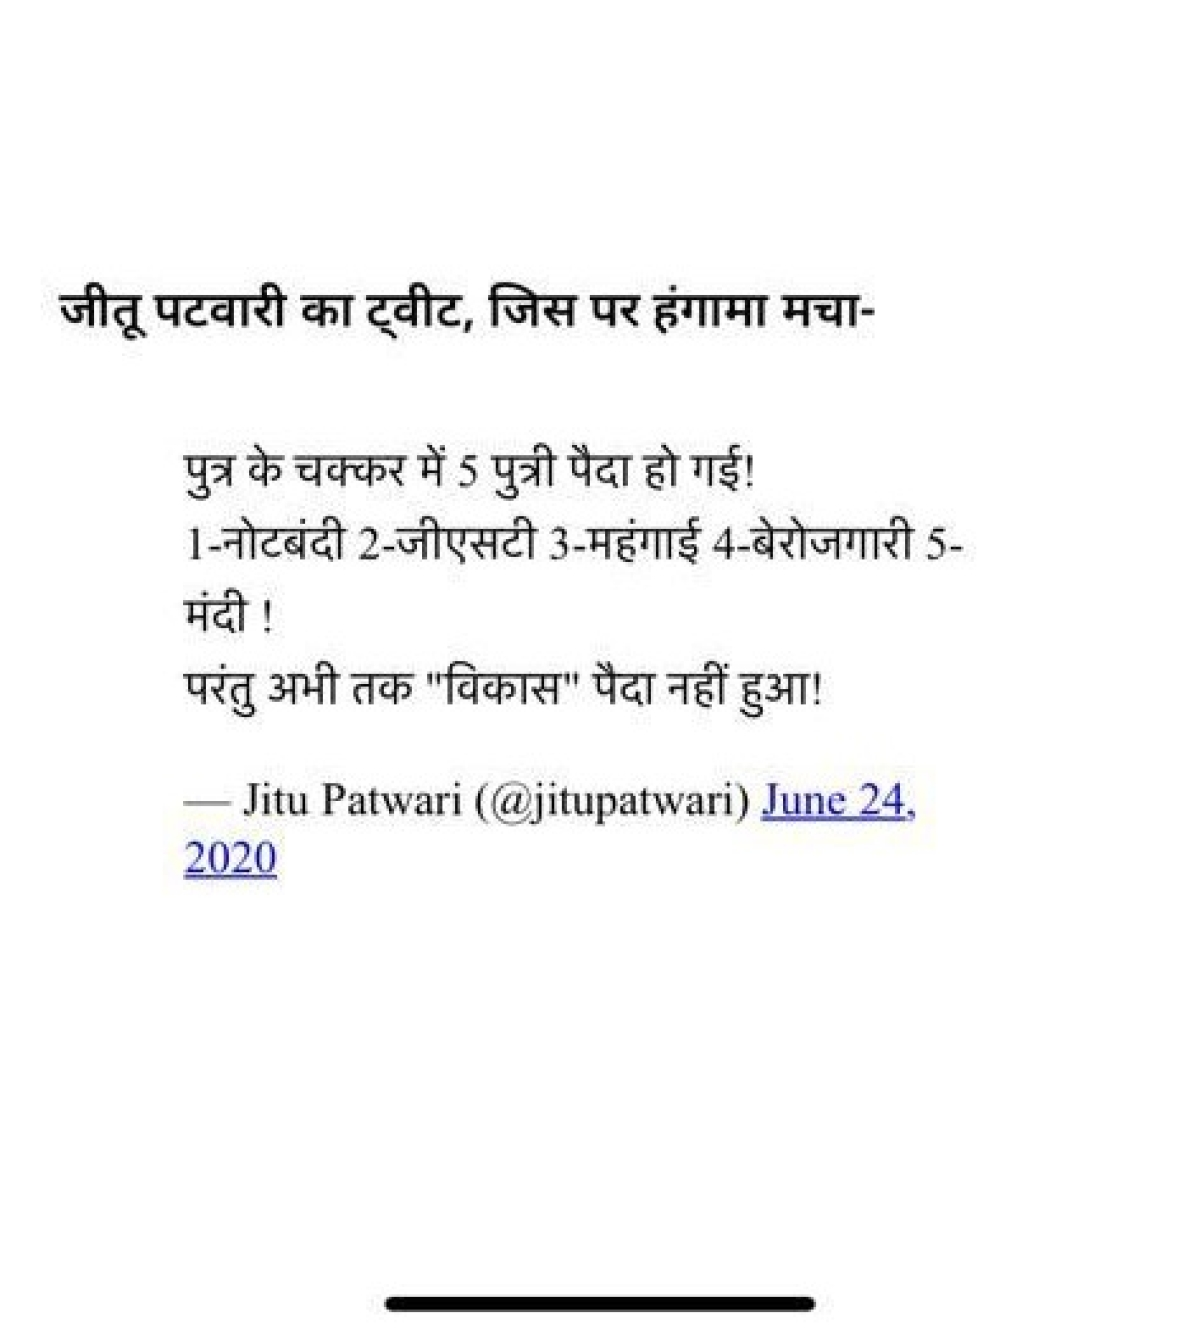 Tweet of Minister Jitu Patwari, which happens to be deleted at present, after Patwari faced the bruise of politicians and netizens.